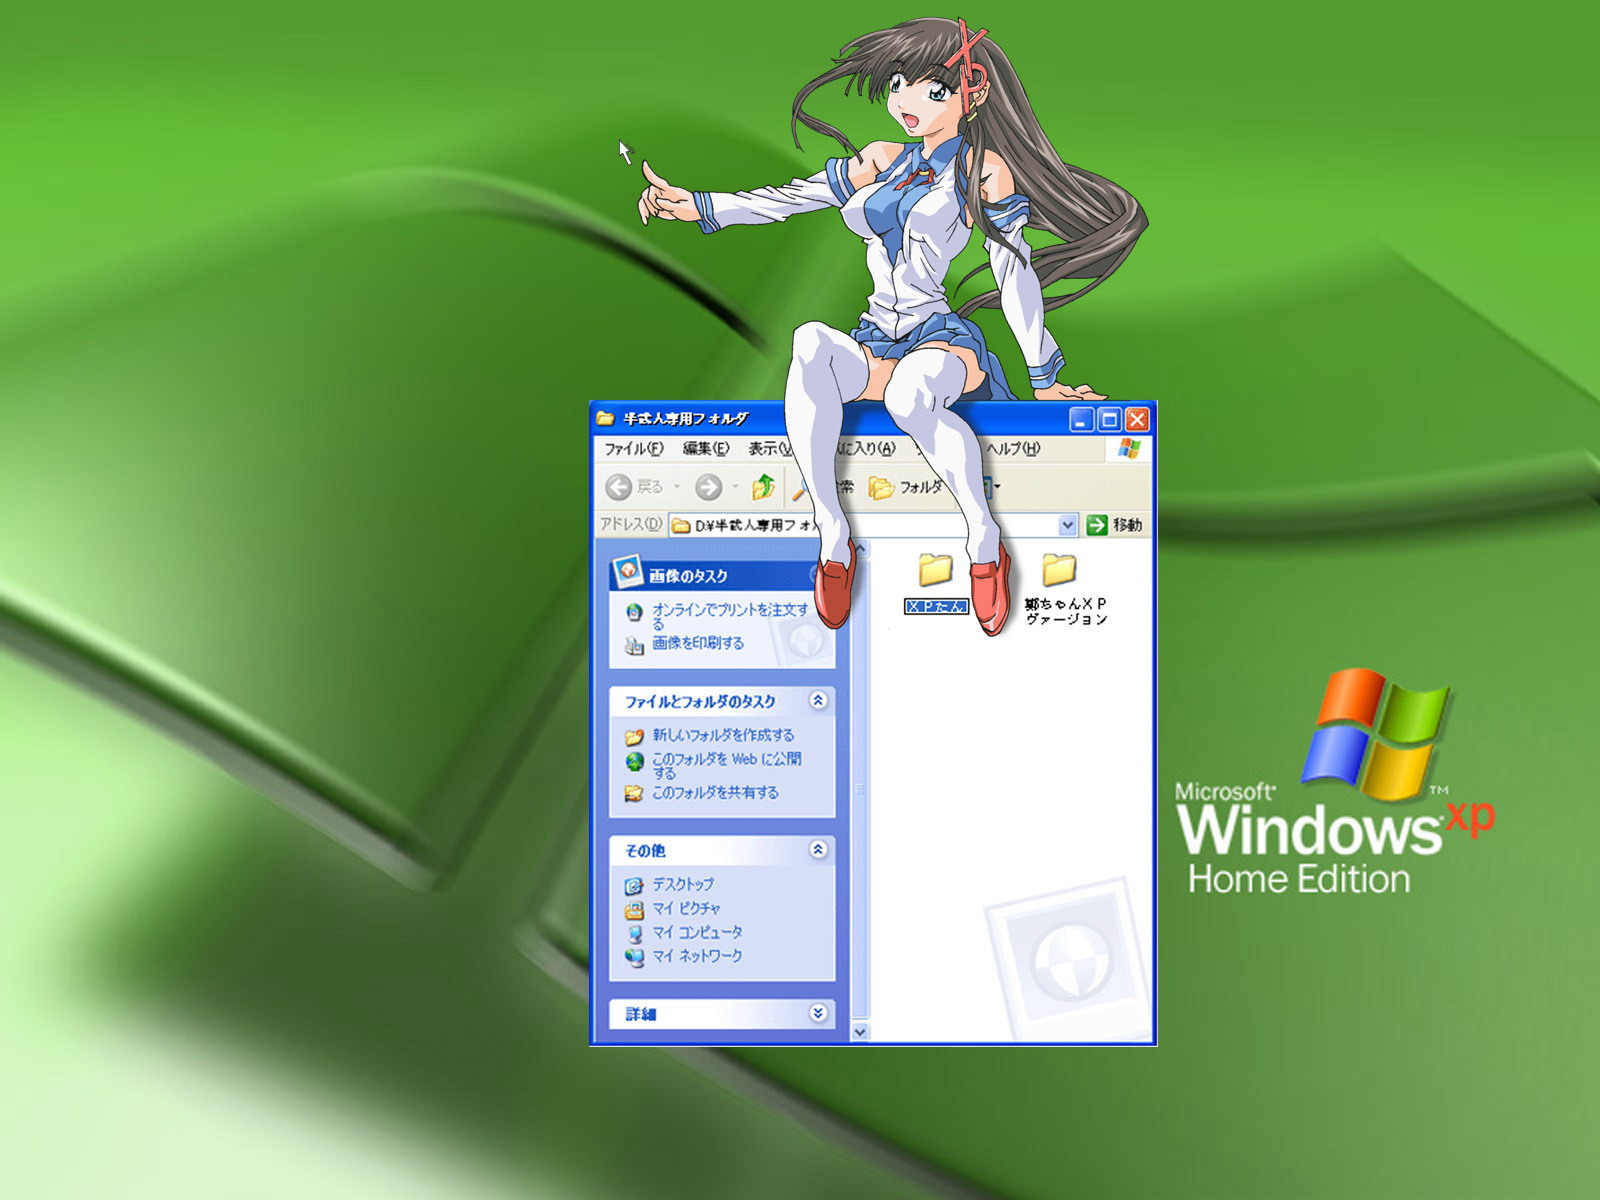 Wallpaper Theme Windows XP Sexy sur la fenetre